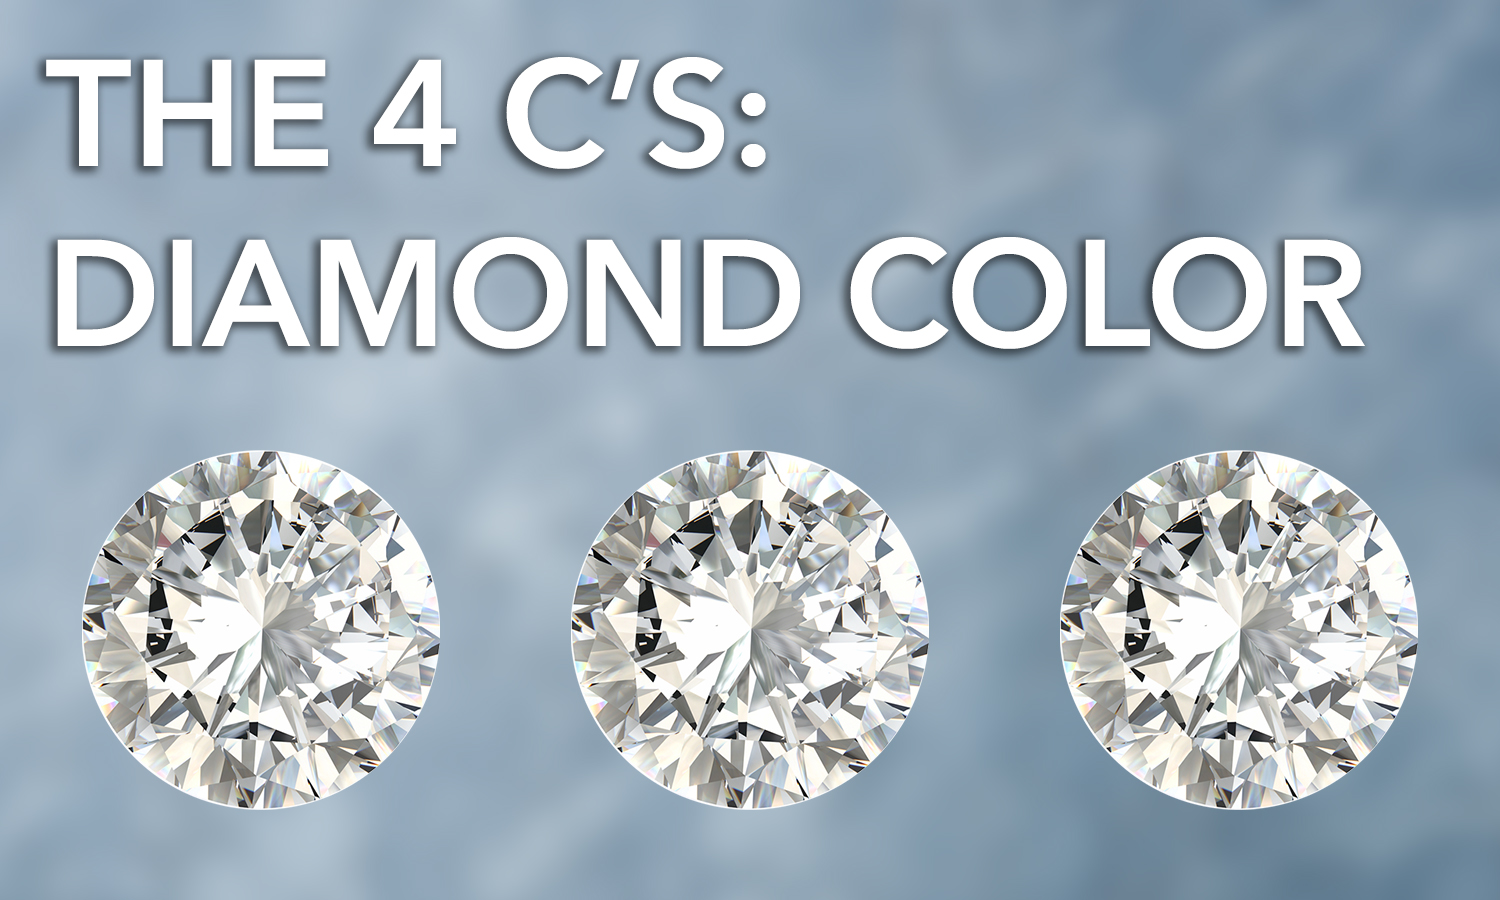 The 4 C's: Diamond Color